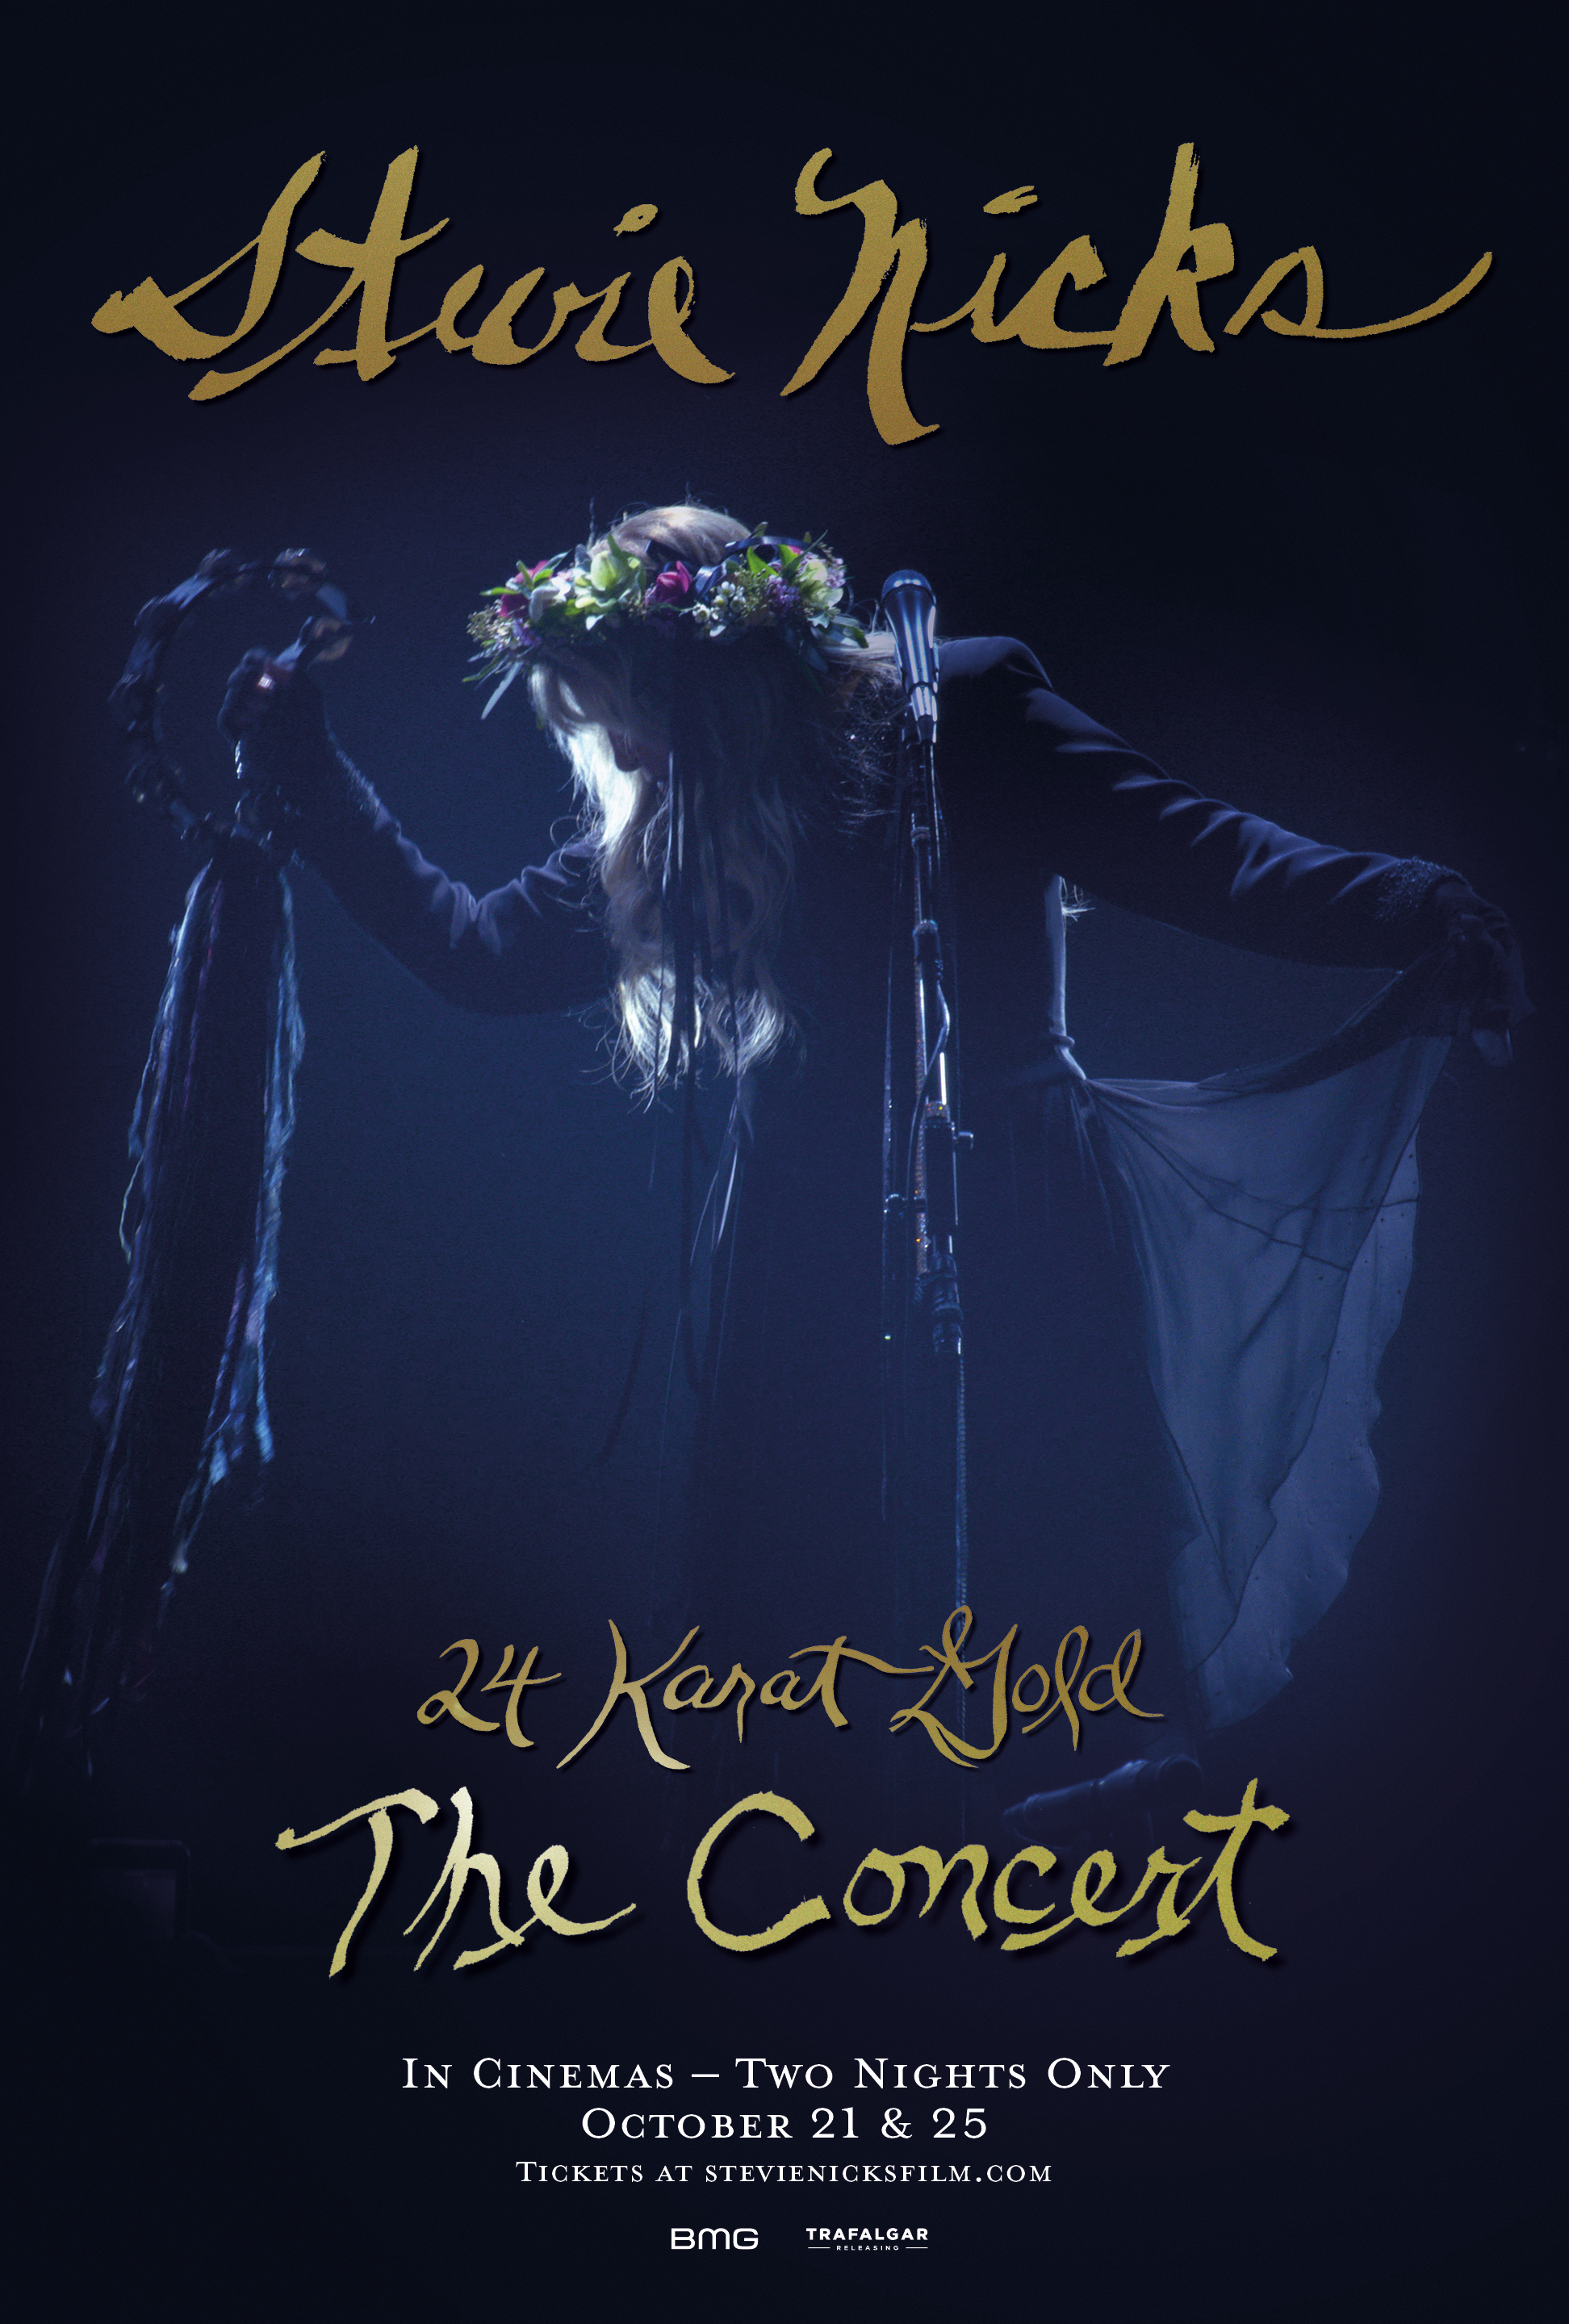 Movie poster image for STEVIE NICKS 24 KARAT GOLD THE CONCERT